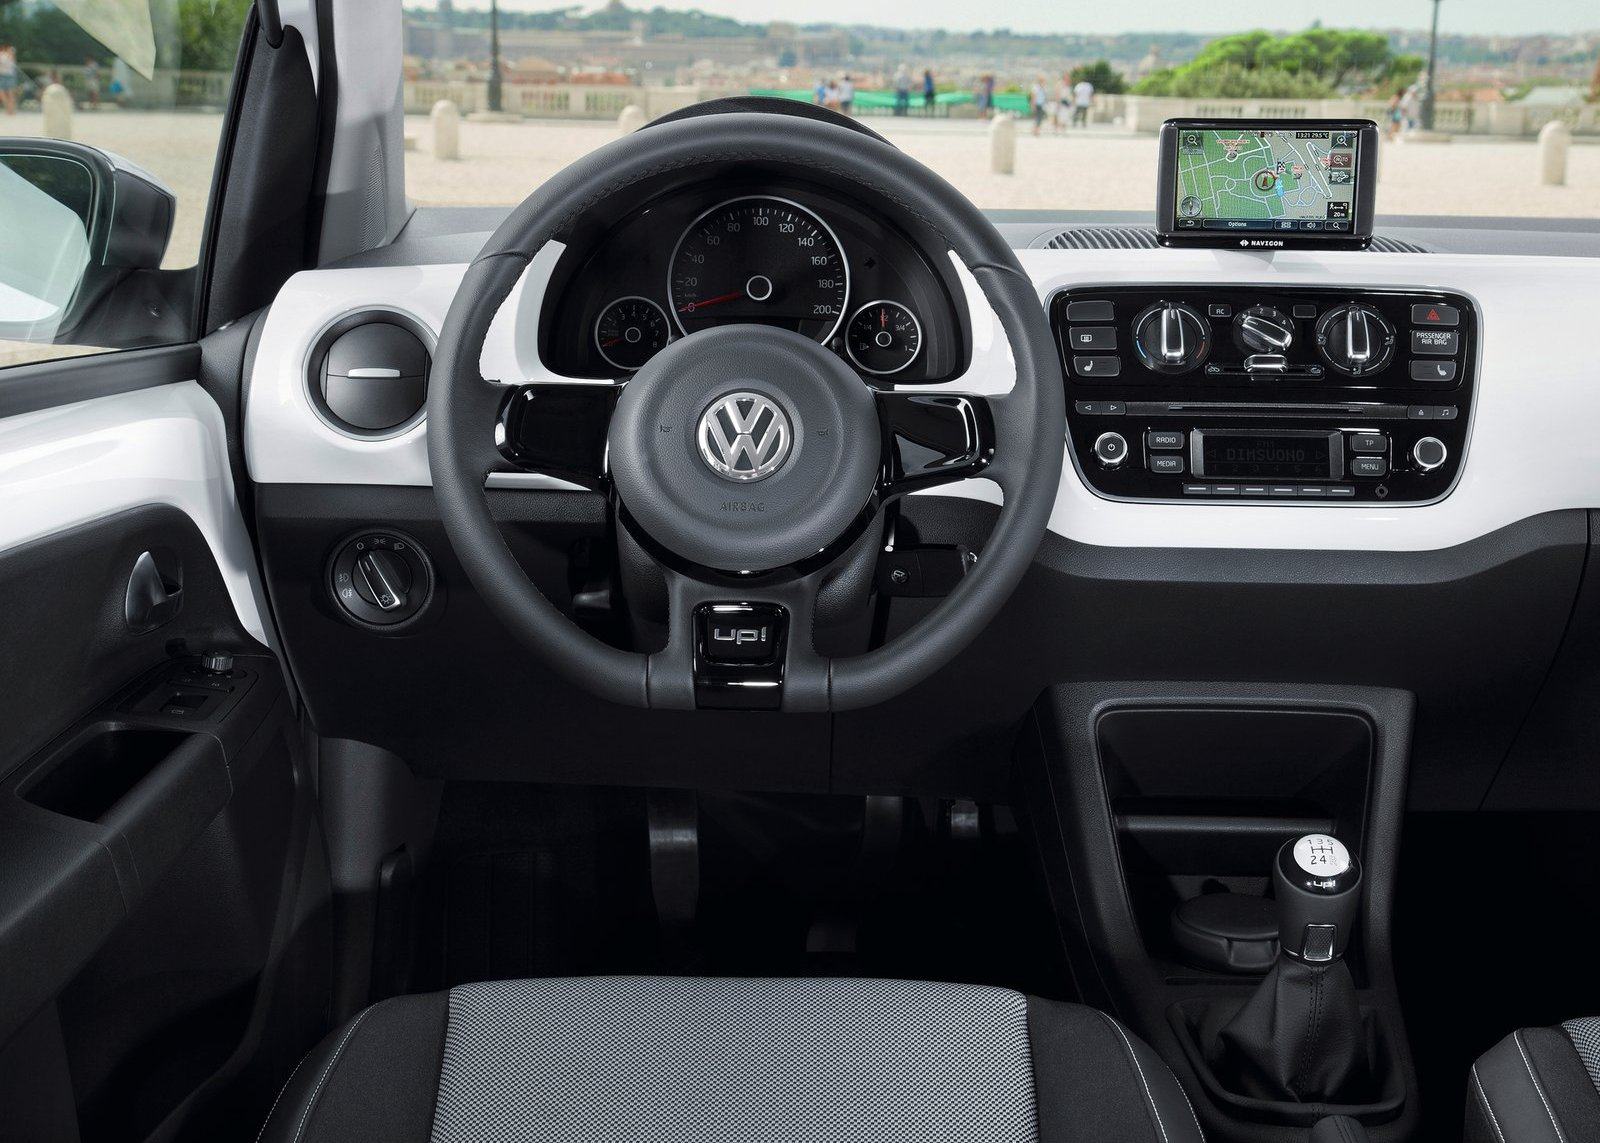 Interieur Vw Up Intérieur 11 16 Volkswagen Up 2012 Http Vw Up Free Fr